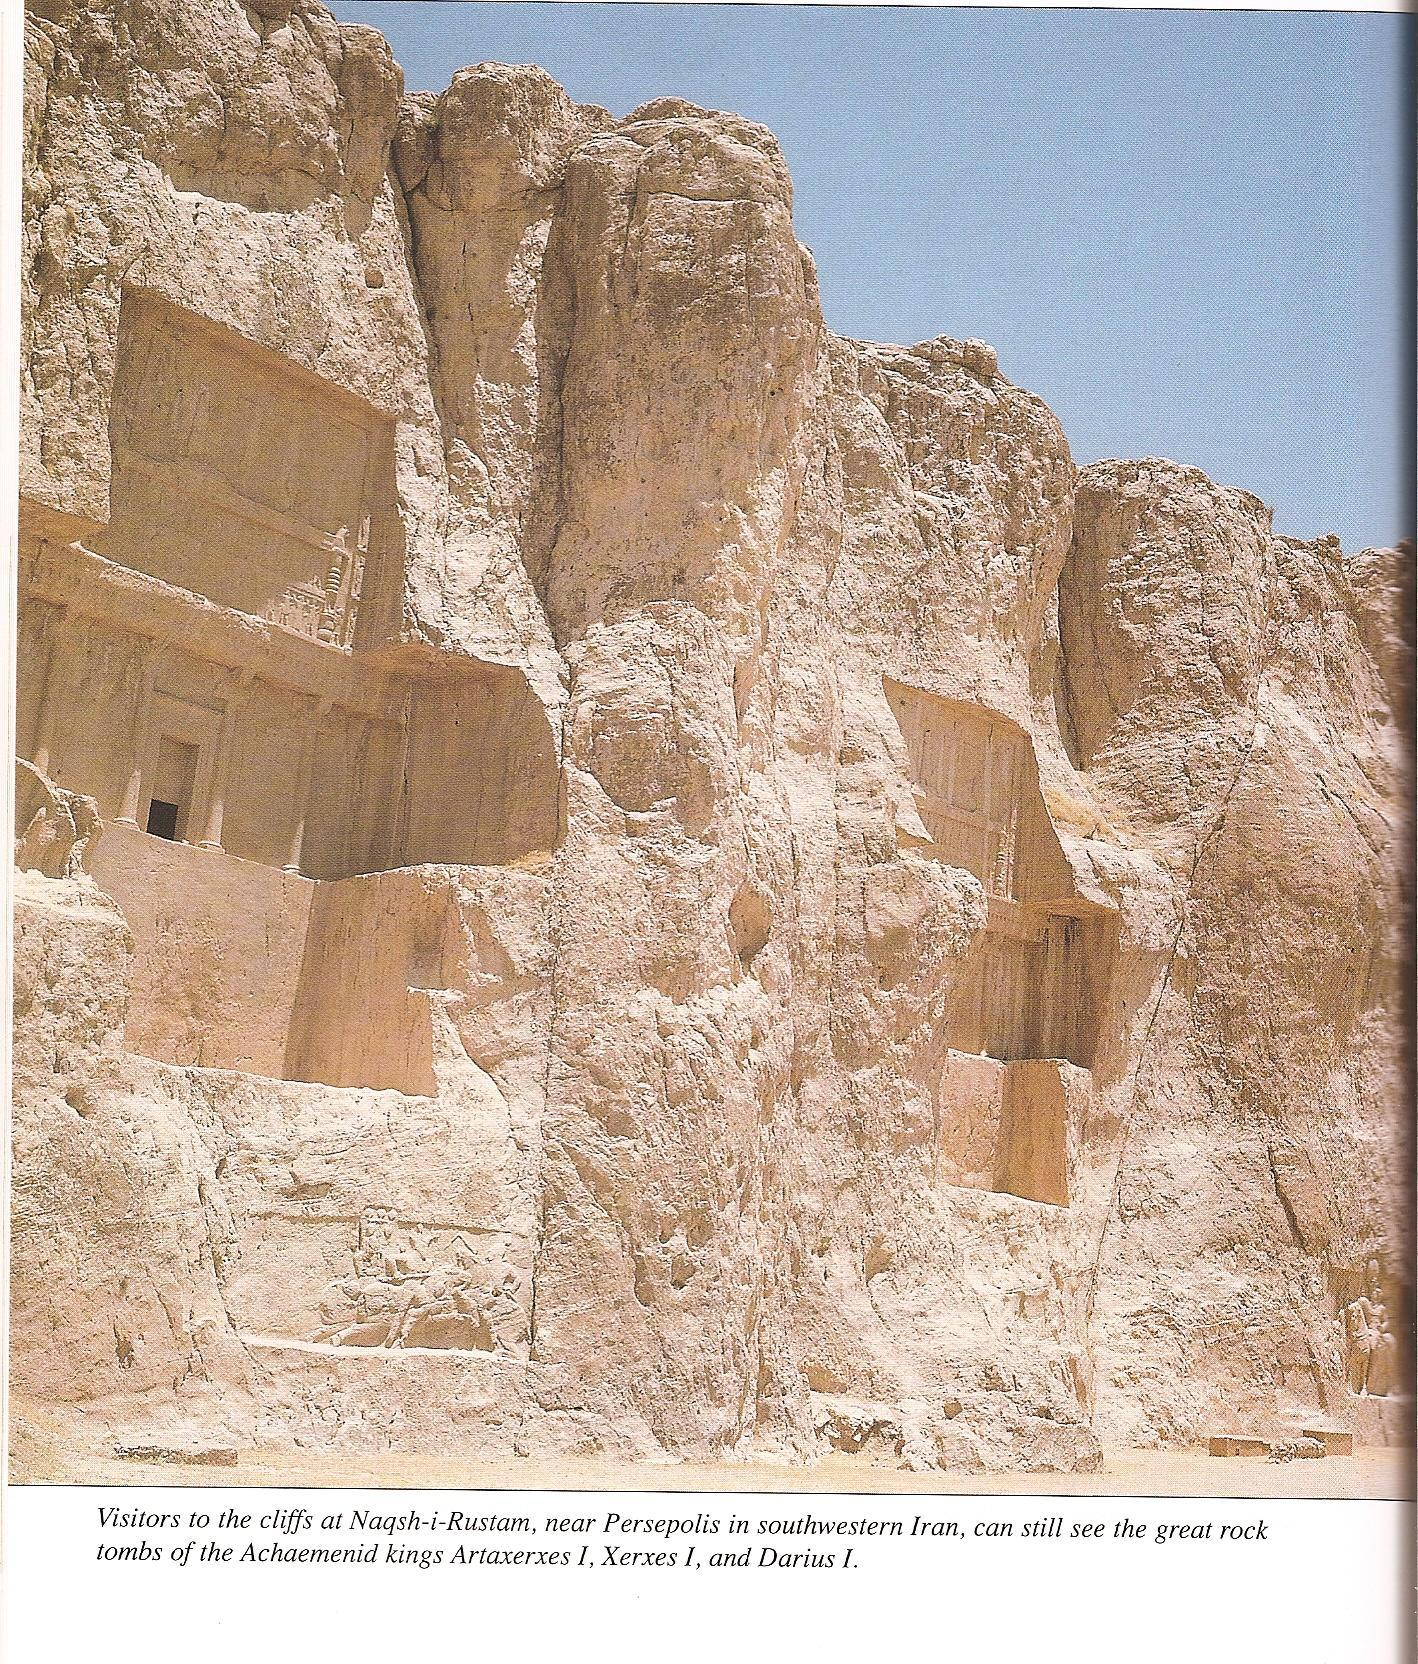 tombs of kings Darius, Xerxes, & Arta-Xerxes, ancient tombs of Persian giant mixed-breed kings in Iran, alien bloodline, mixed-breed kings & others protected by alien giant gods, their offspring were buried in grand style & preserved for history, until Radical Islam destroyed them